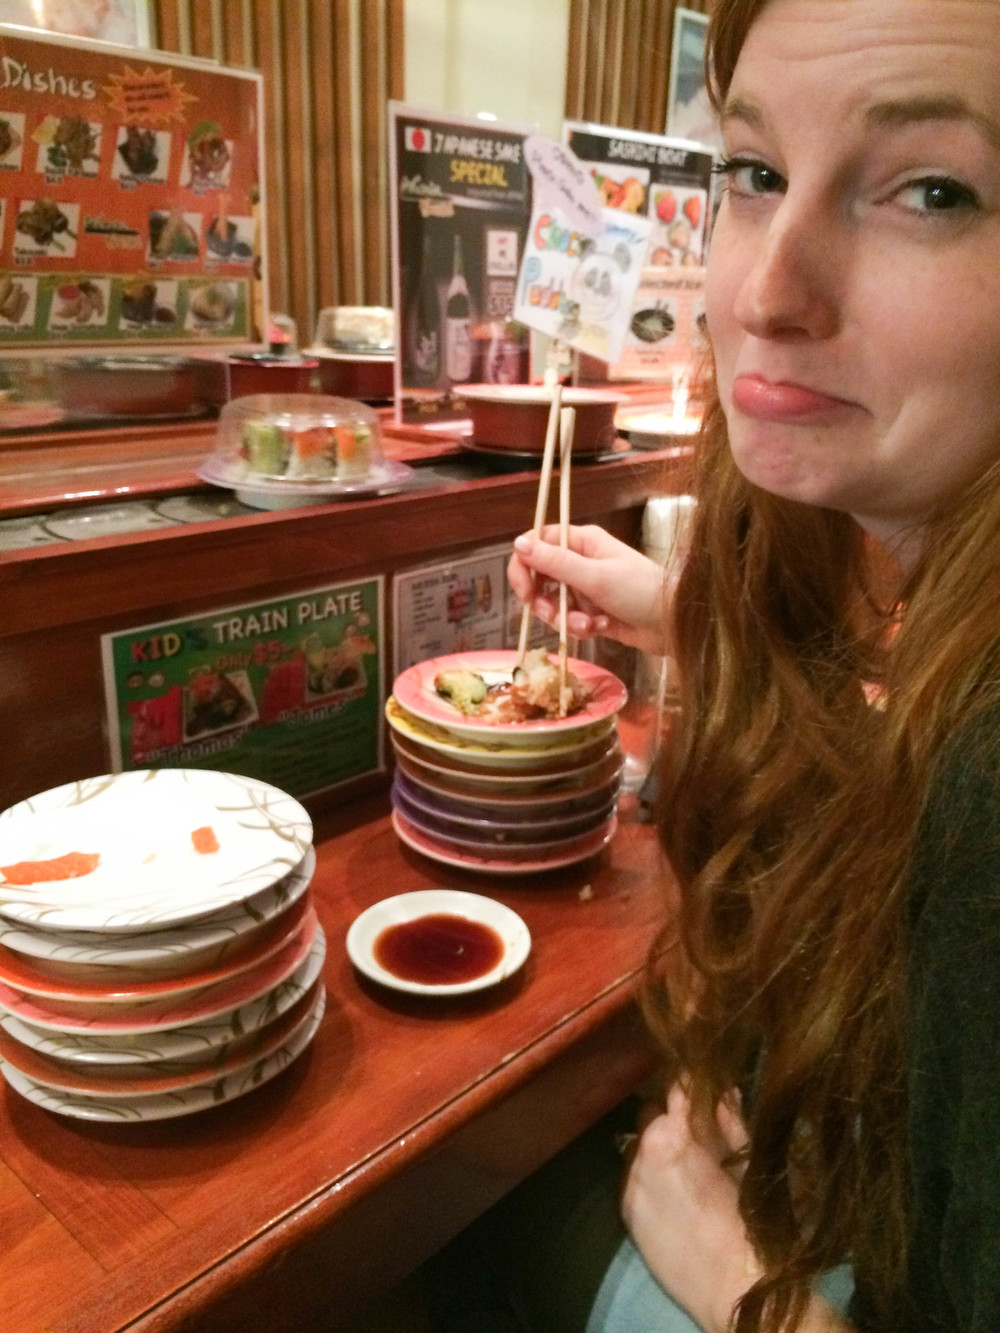 I look sad because I got too much sushi and I couldn't eat it all.